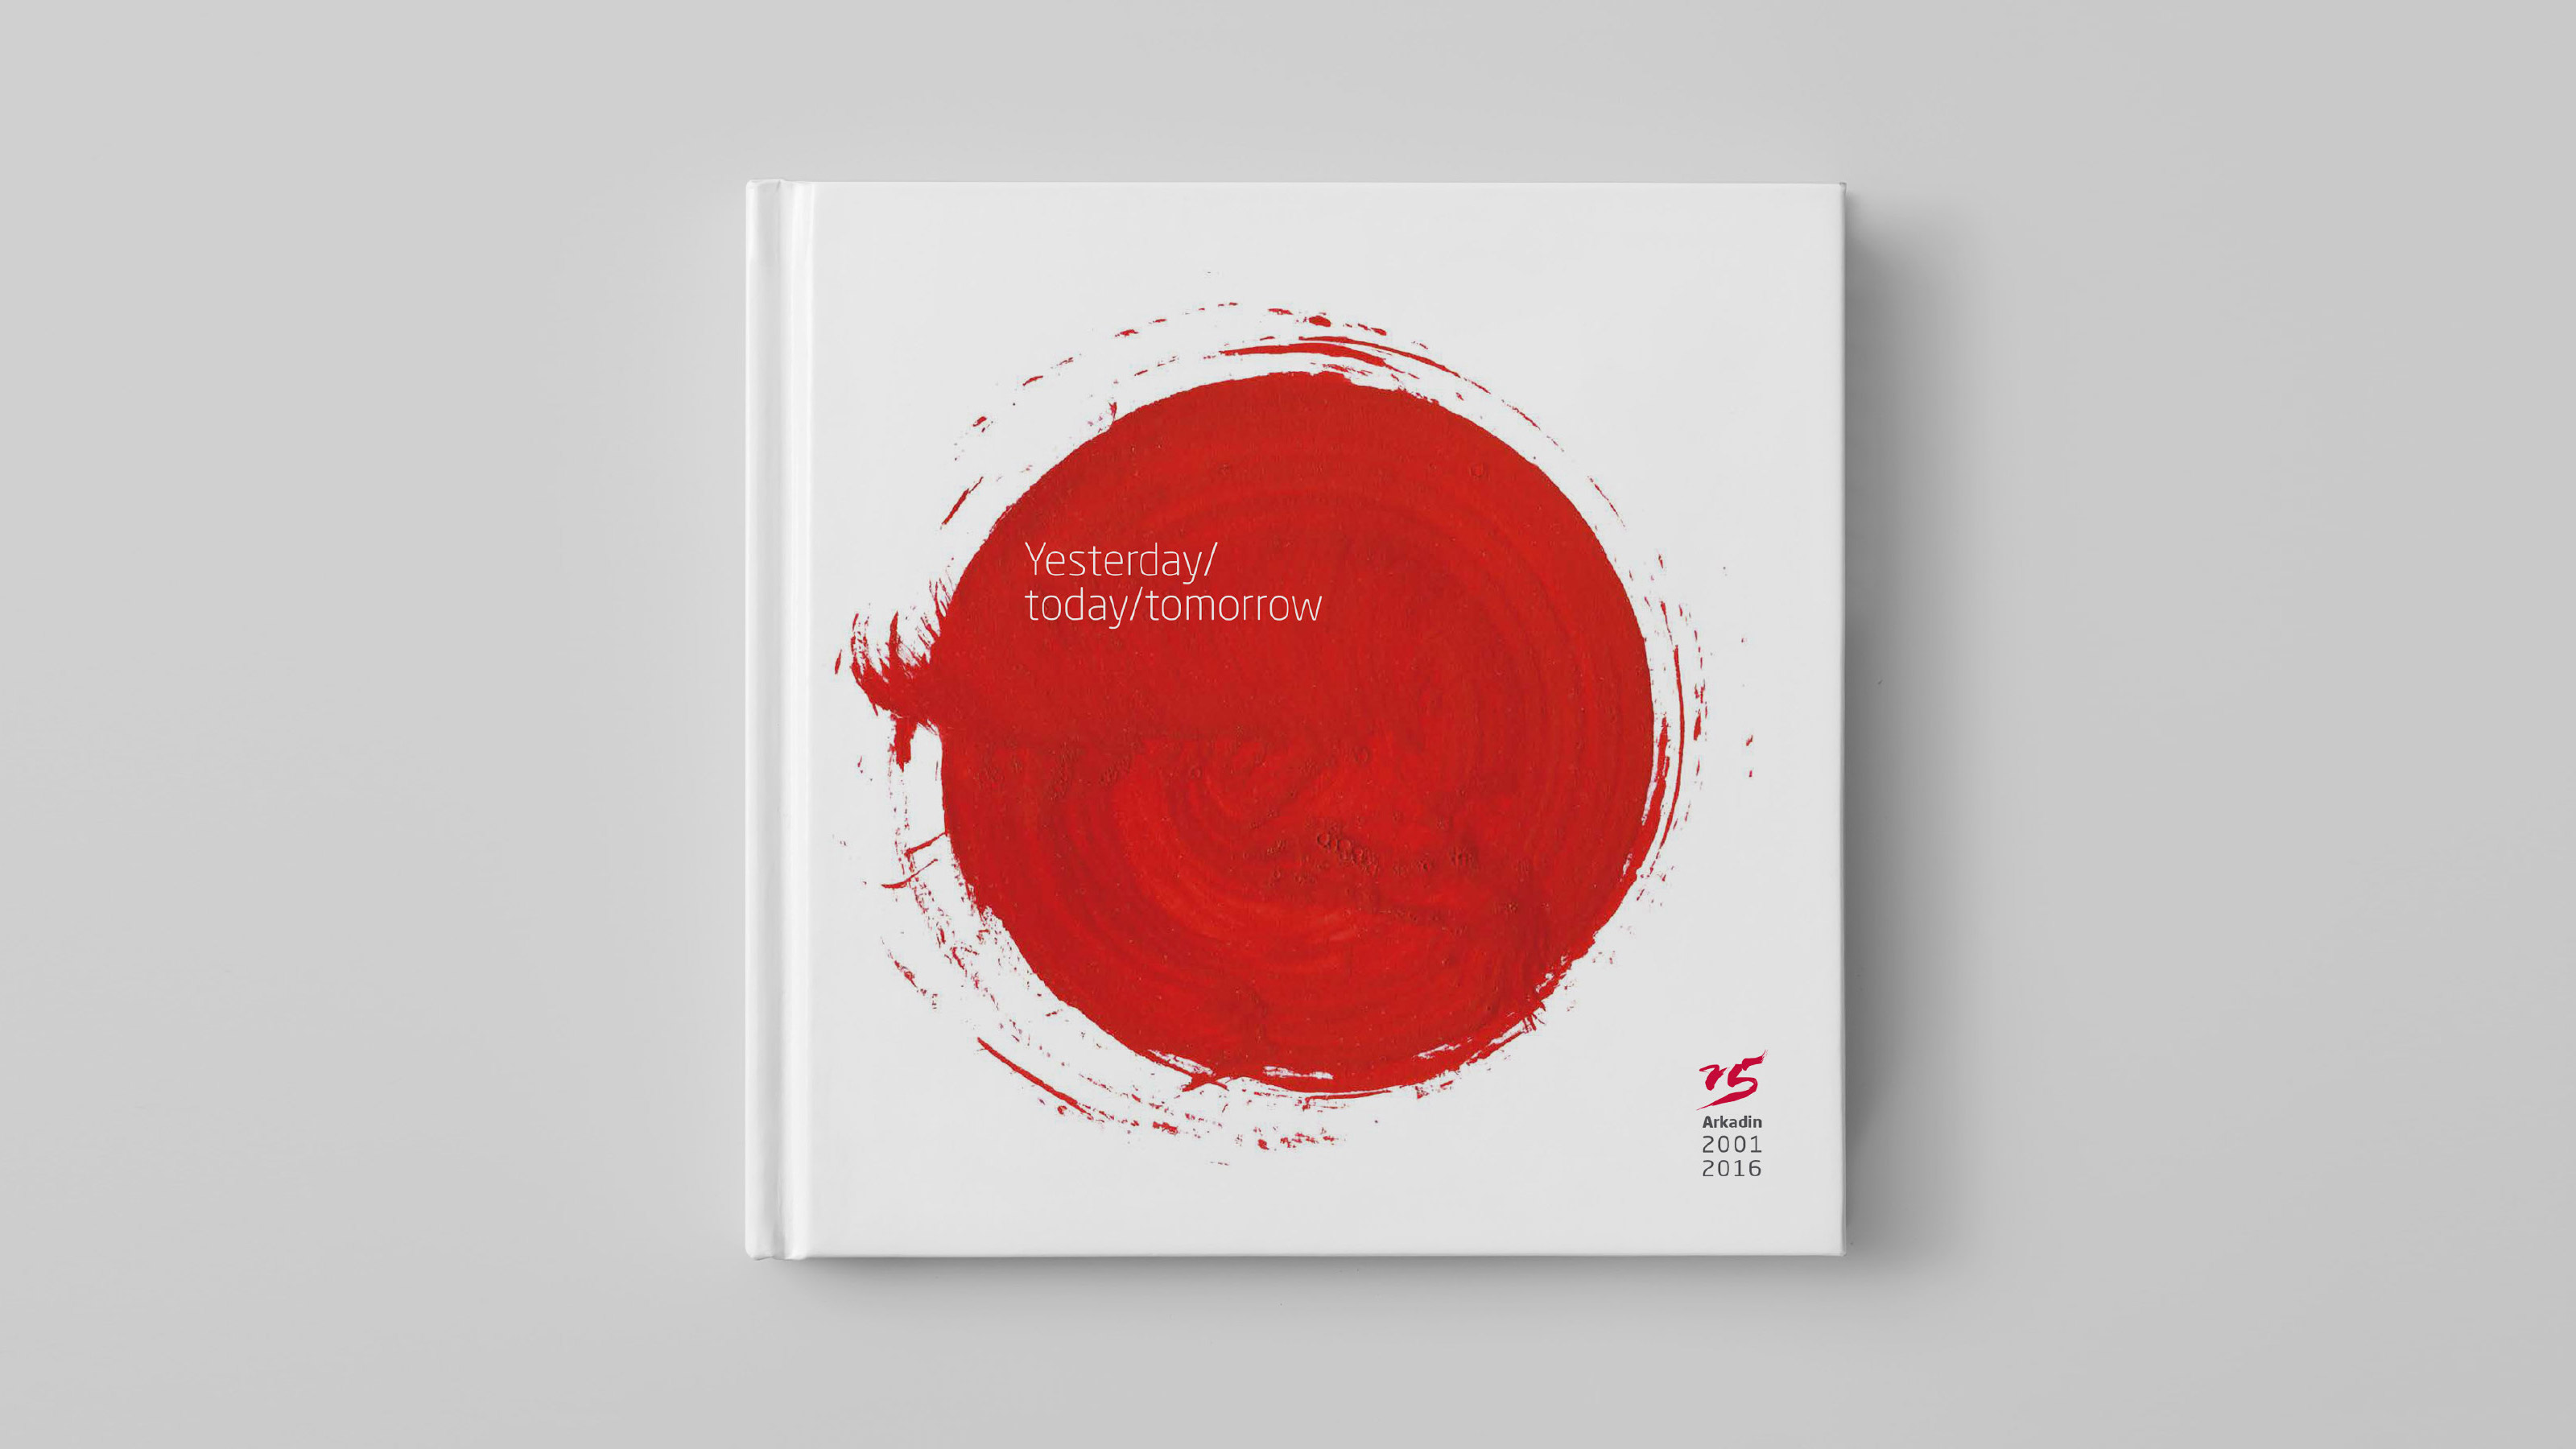 marketing book cover red circle Arkadin